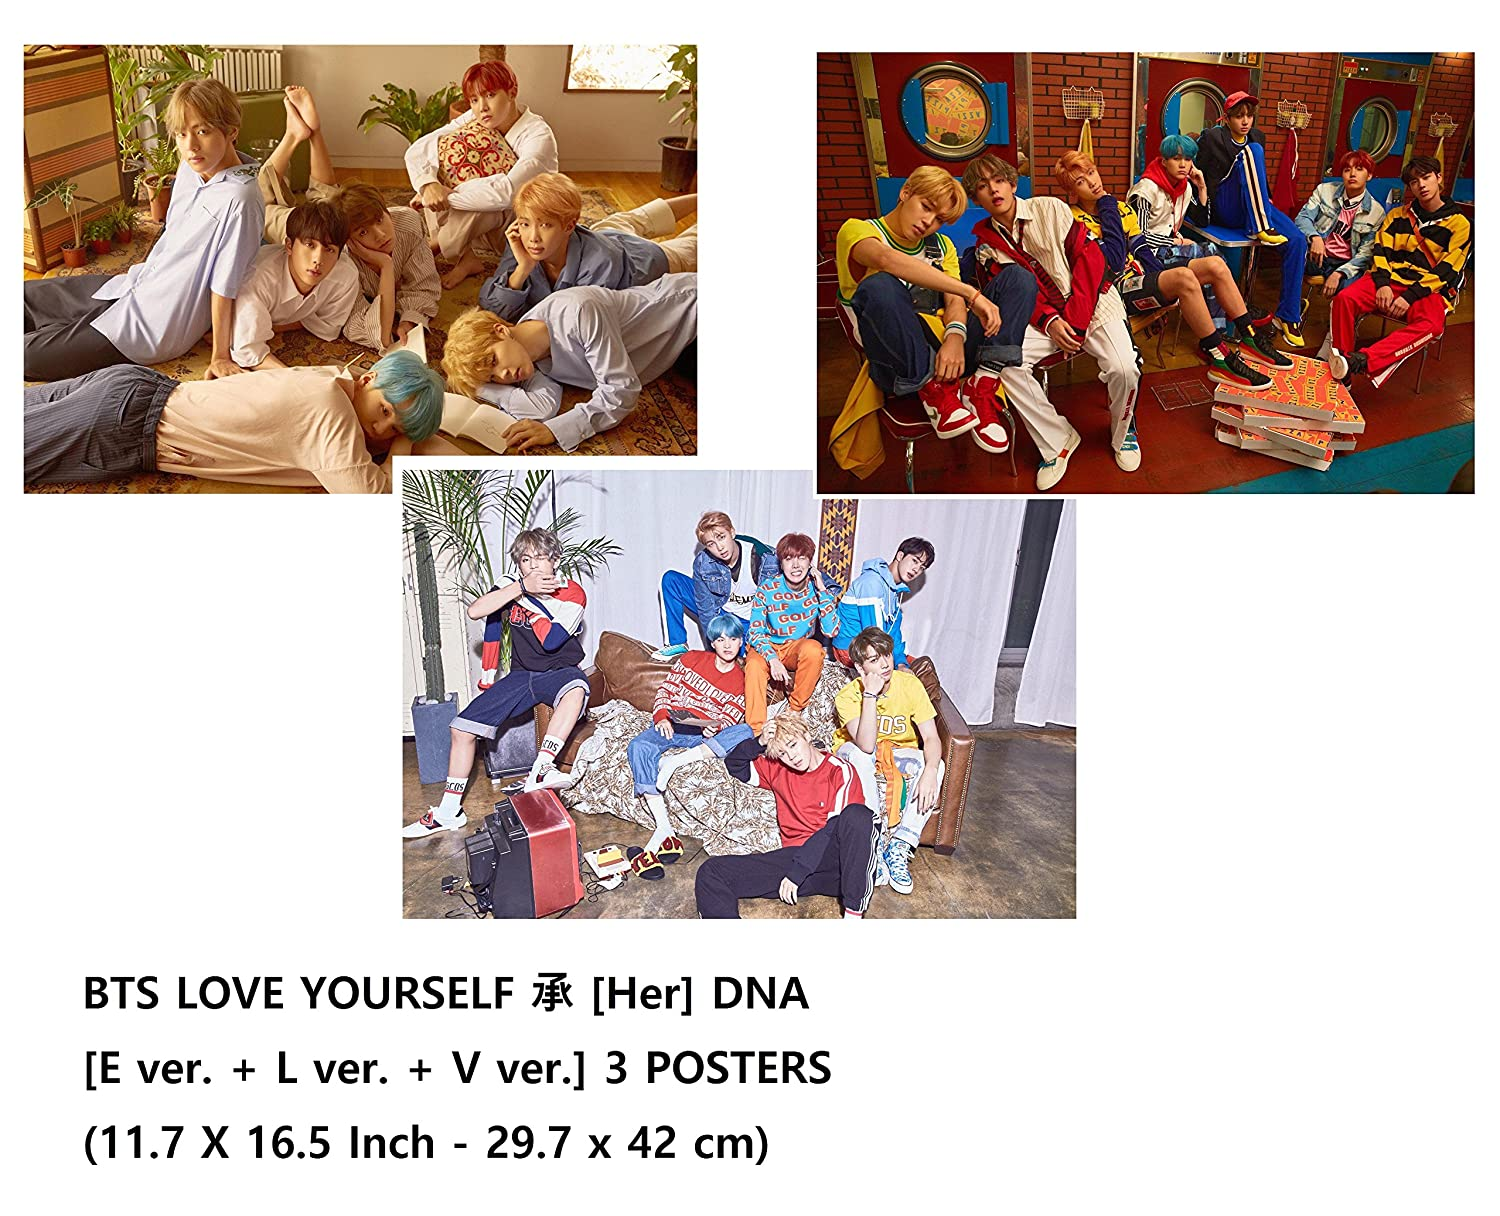 BTS - LOVE YOURSELF 承 [Her] DNA [E ver   L ver   V ver] 3 POSTERS (30 X 42 cm)